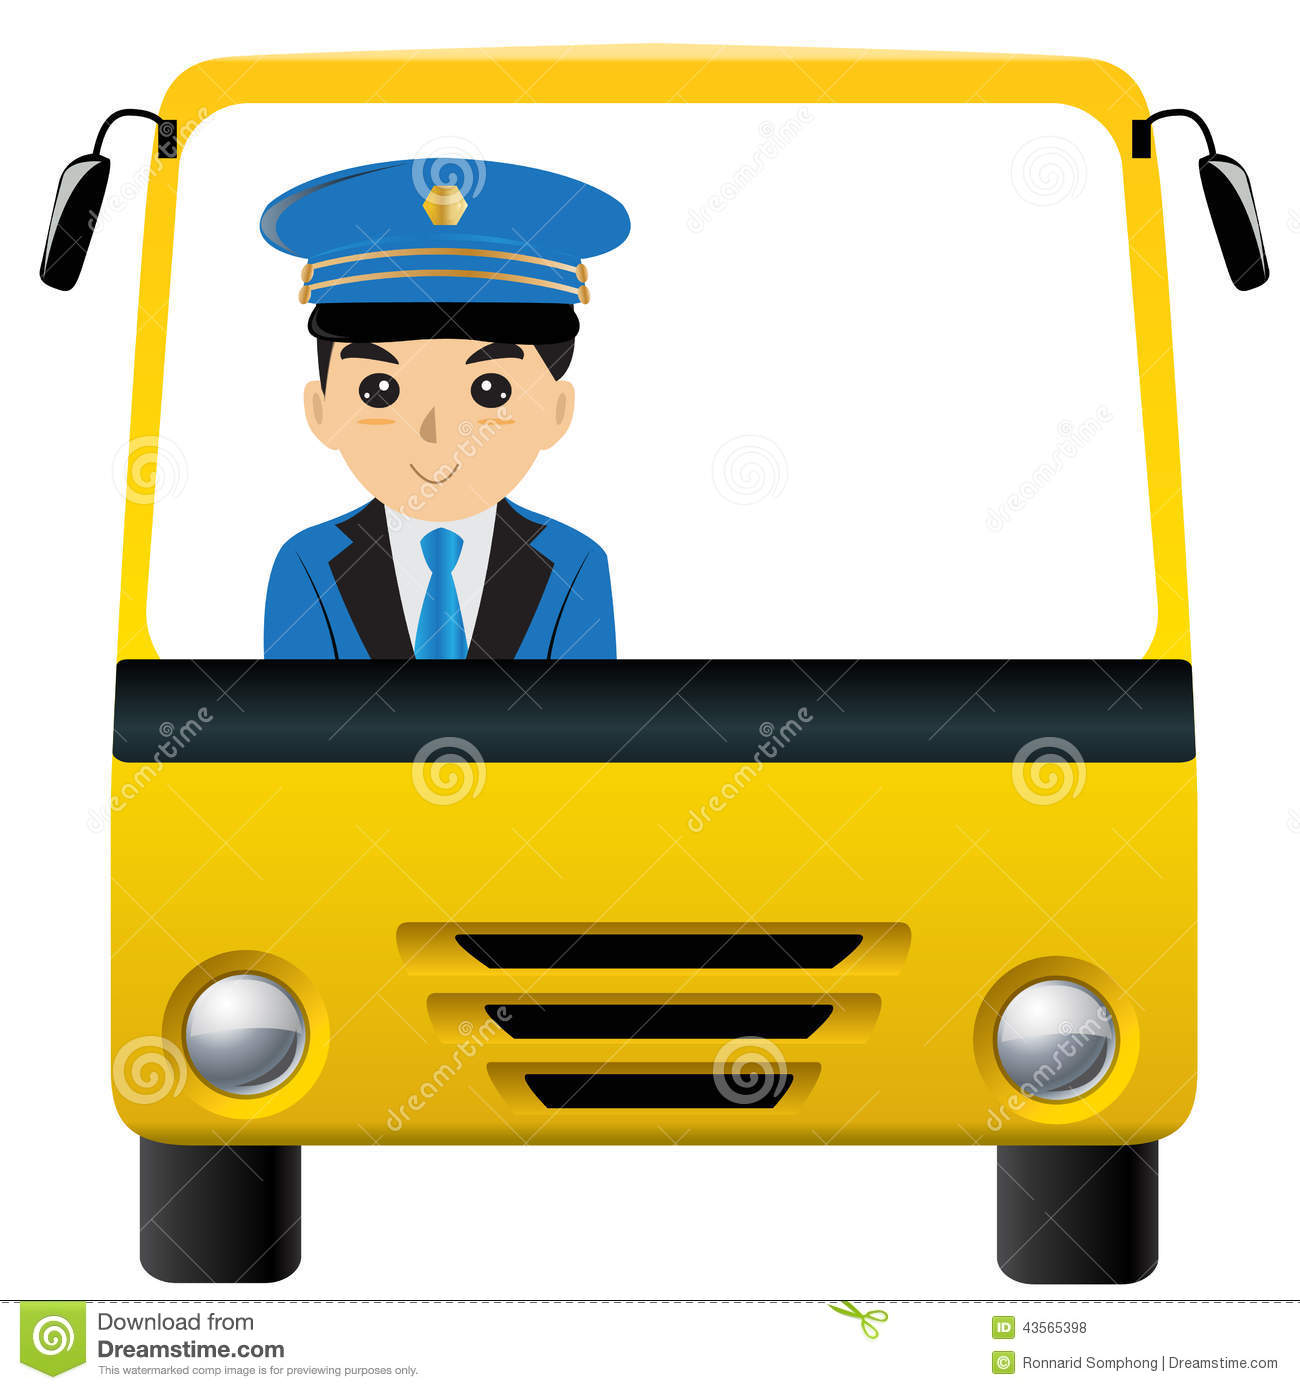 Bus driver clipart svg freeuse Bus driver clipart 7 » Clipart Station svg freeuse